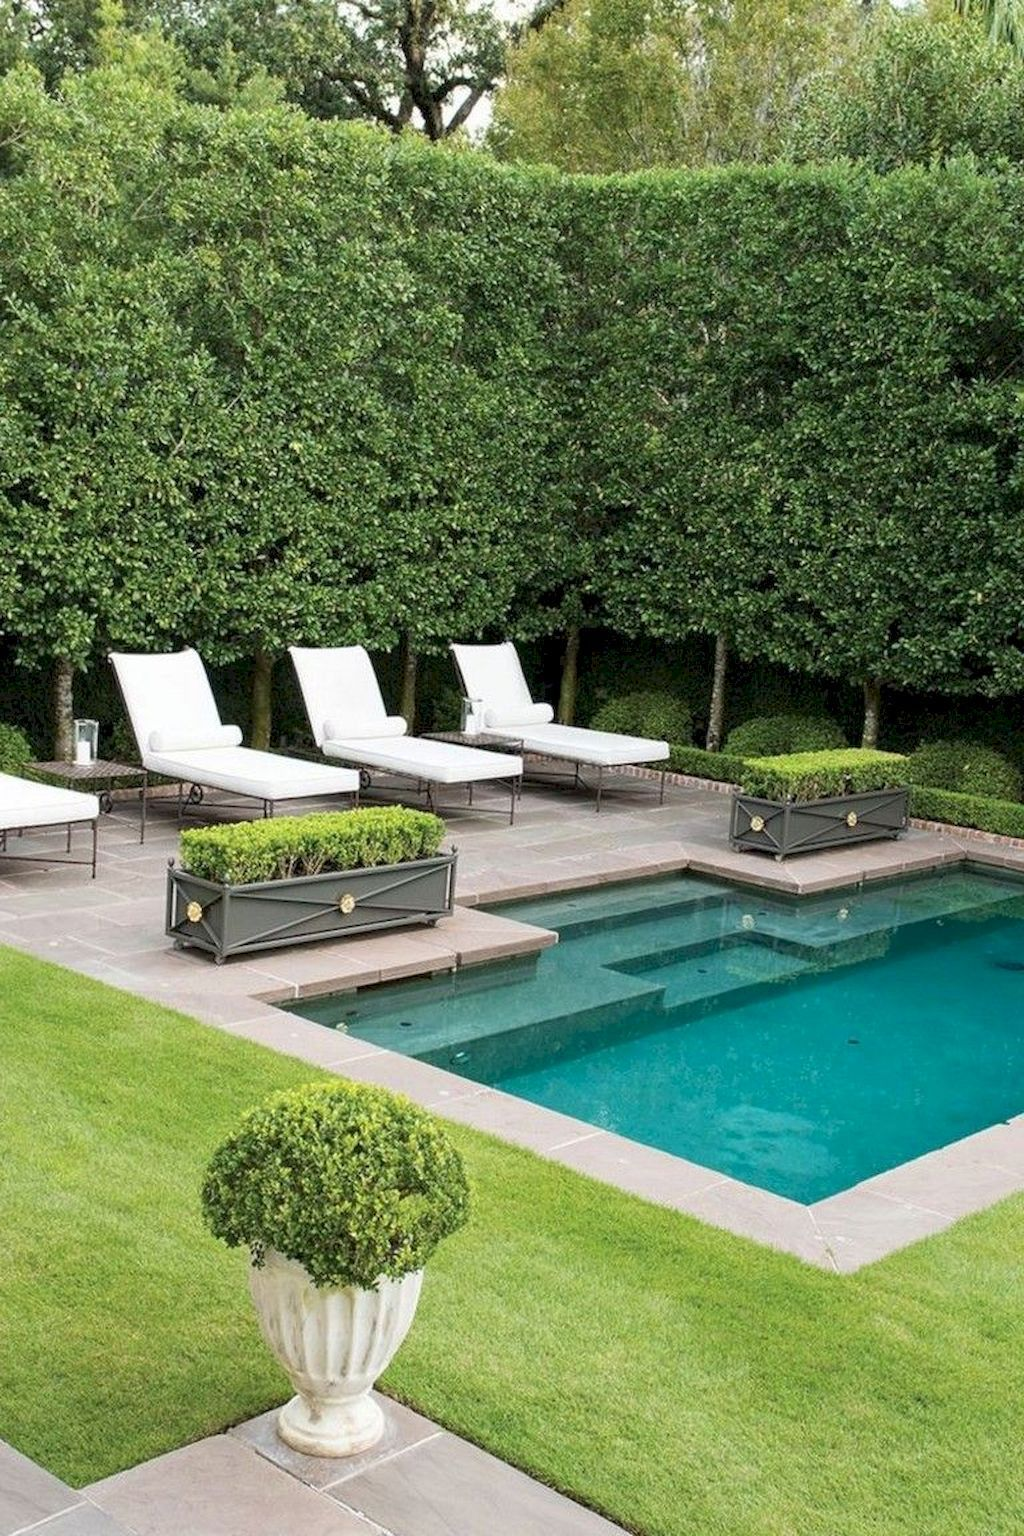 Landscaping Swimming Pool Design Ideas That S 21 Extremely Beautiful Swimming Pool Design Ju In 2020 Small Backyard Pools Swimming Pools Backyard Cool Swimming Pools